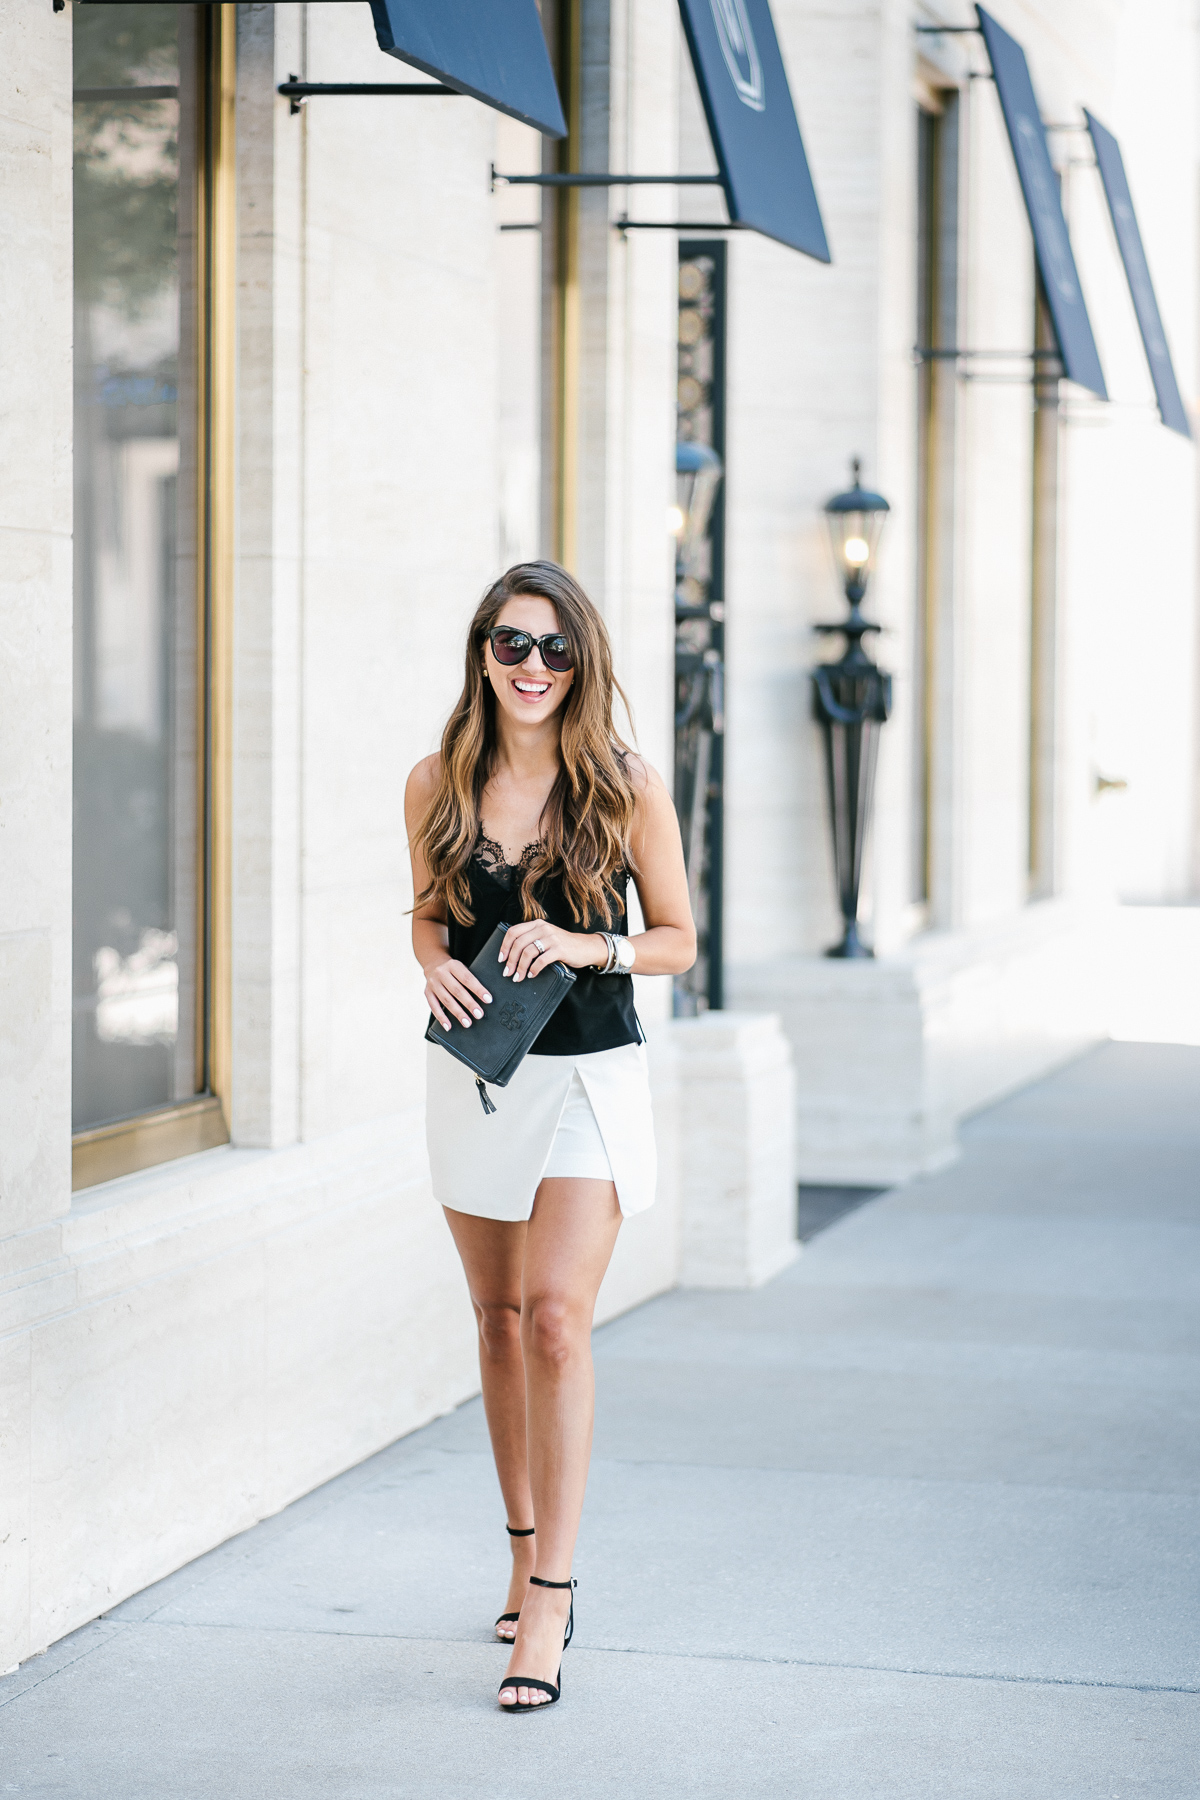 Dress Up Buttercup, Dede Raad, Houston blogger, Fashion blogger, White sort, Black and White outfit, Express outfit, Date night outfit